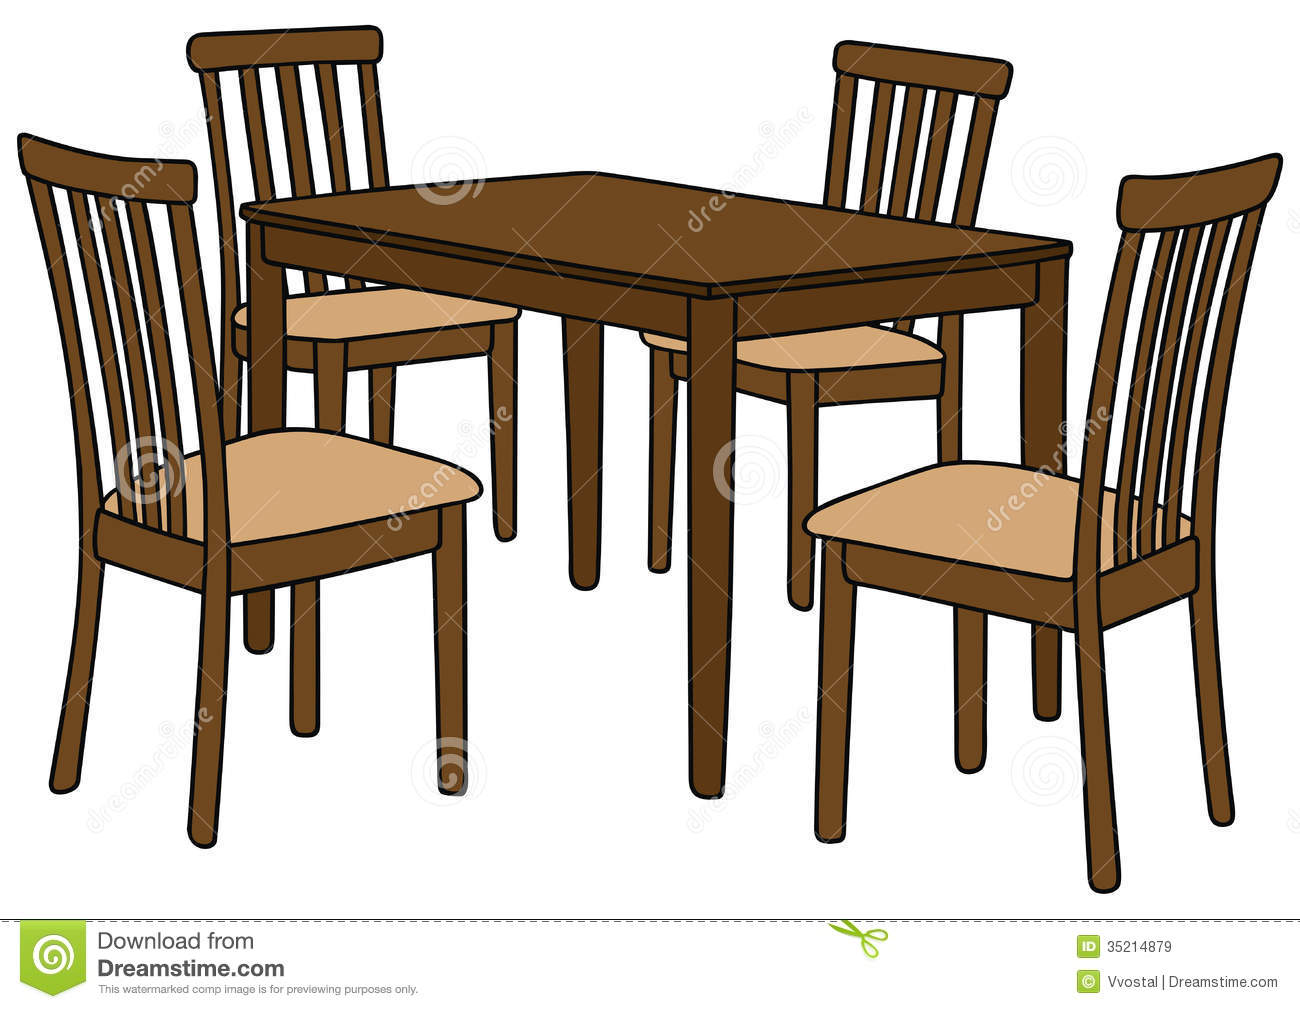 Line Art Table : Table and chairs clipart panda free images